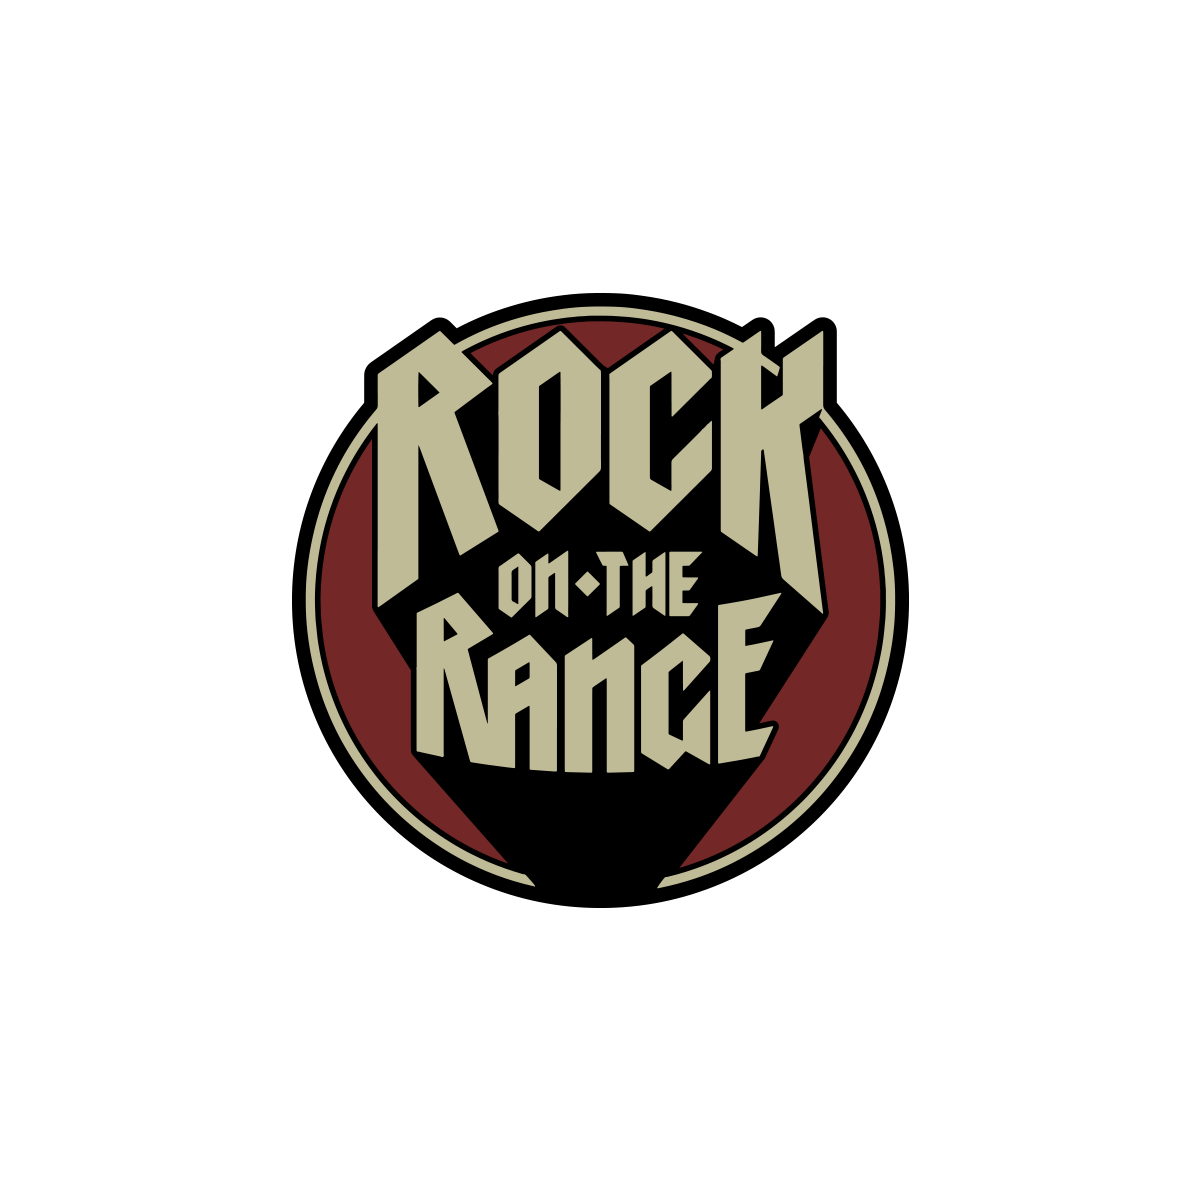 Transparent pin shadow. Rock on the range